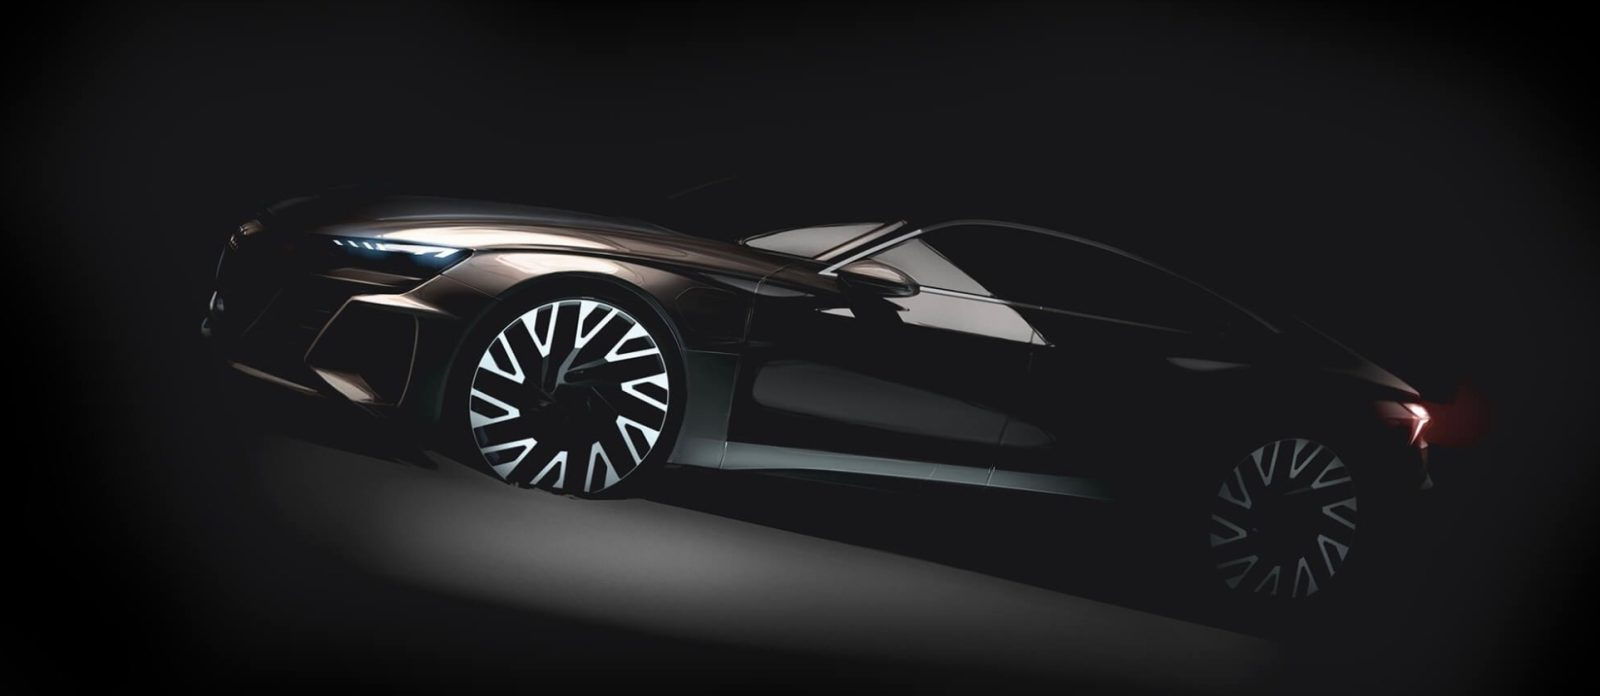 Audis 2020 Electric Sport E Tron Gt Is Going To Be Based On The Home Switches 4 Way Porsche Taycan